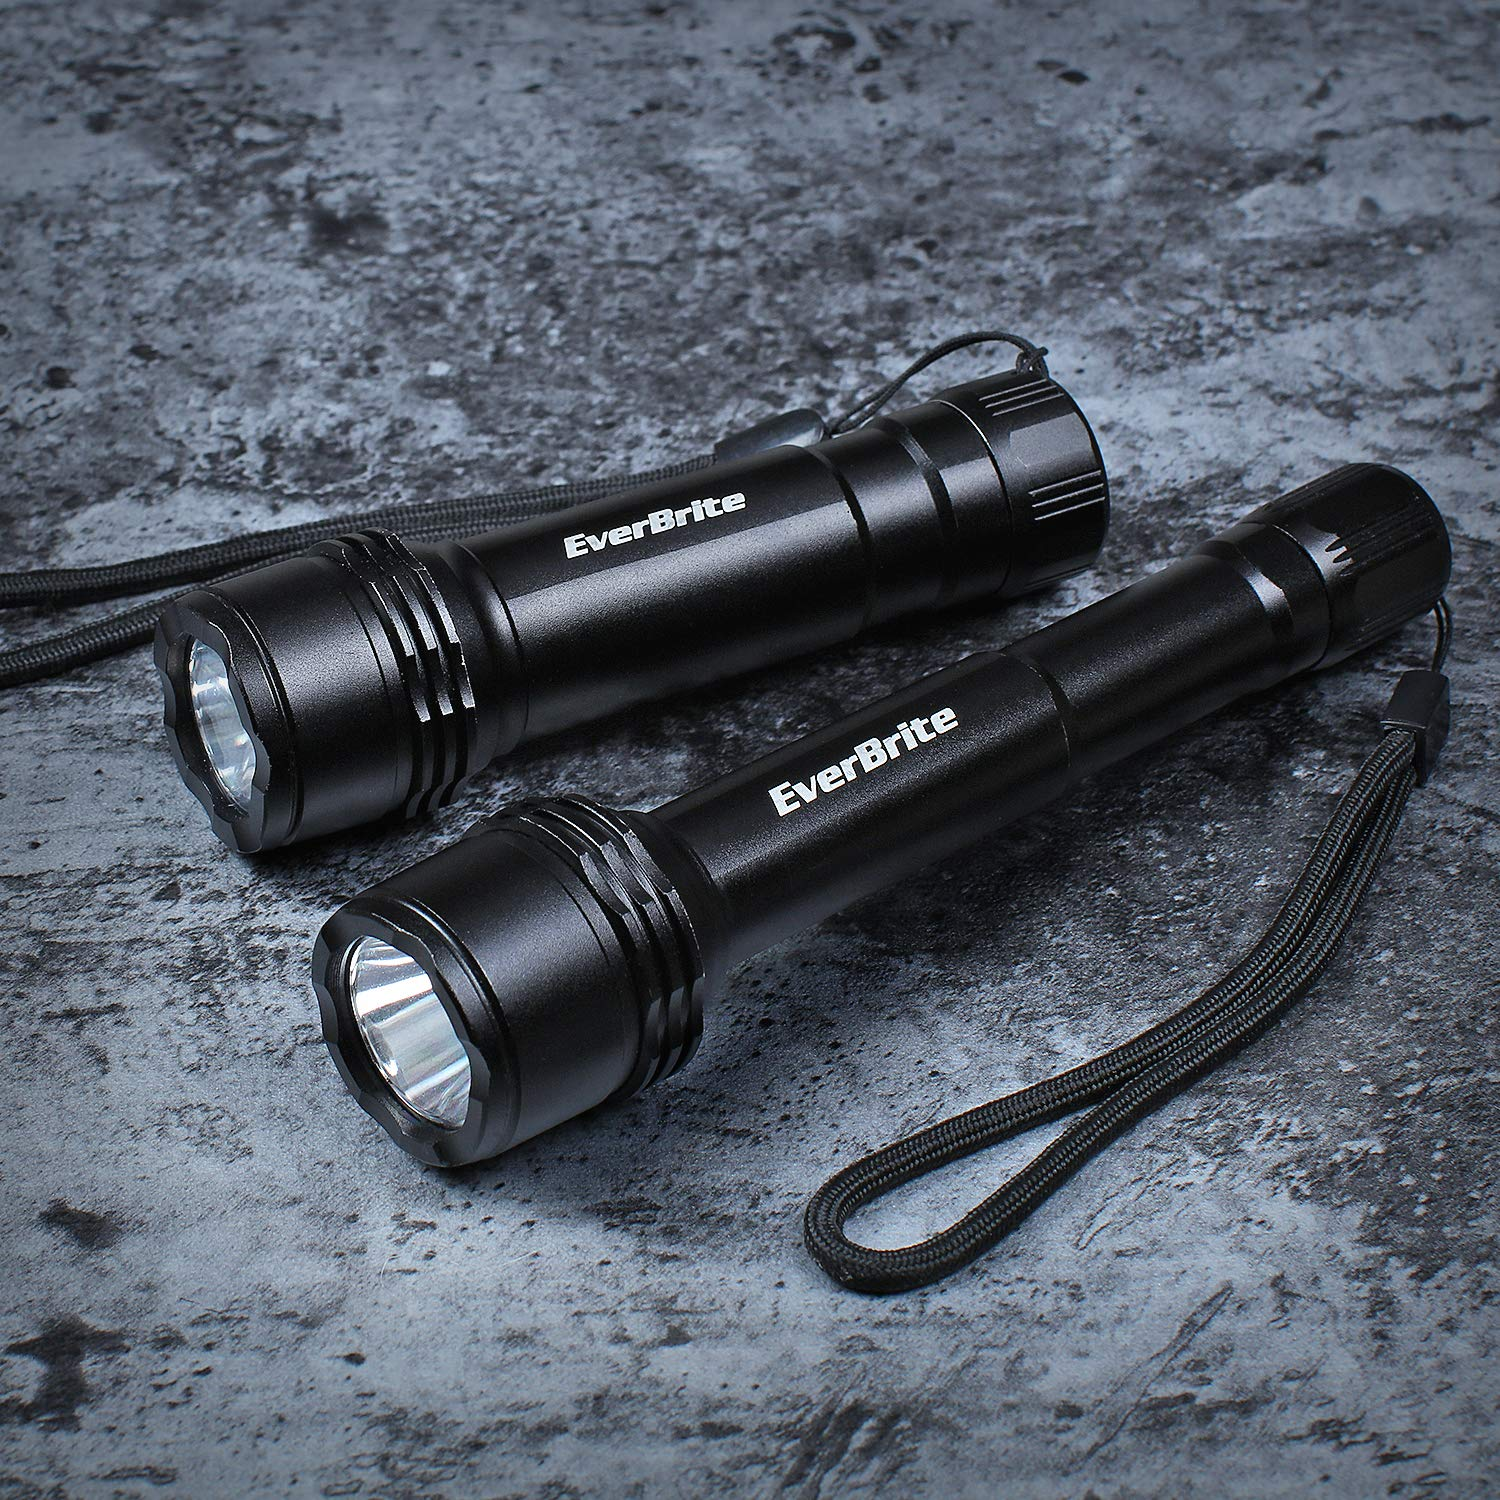 CREE LED Flashlights with 3 Light Modes for Camping and Hiking Alkaline Batteries Included EverBrite 2-piece Tactical Flashlight Set